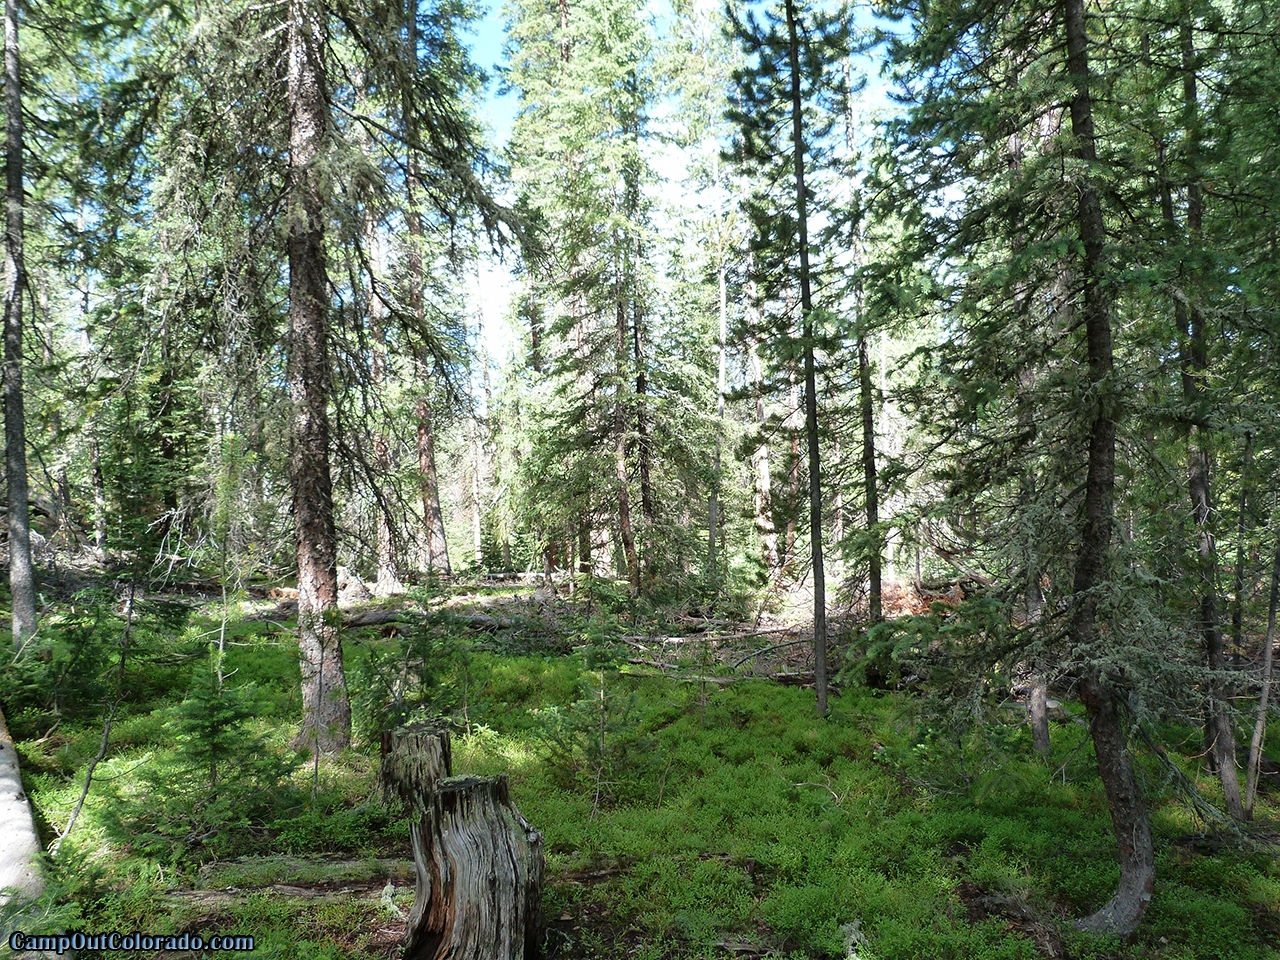 camp-out-colorado-ranger-lakes-campground-lush-forest.jpg